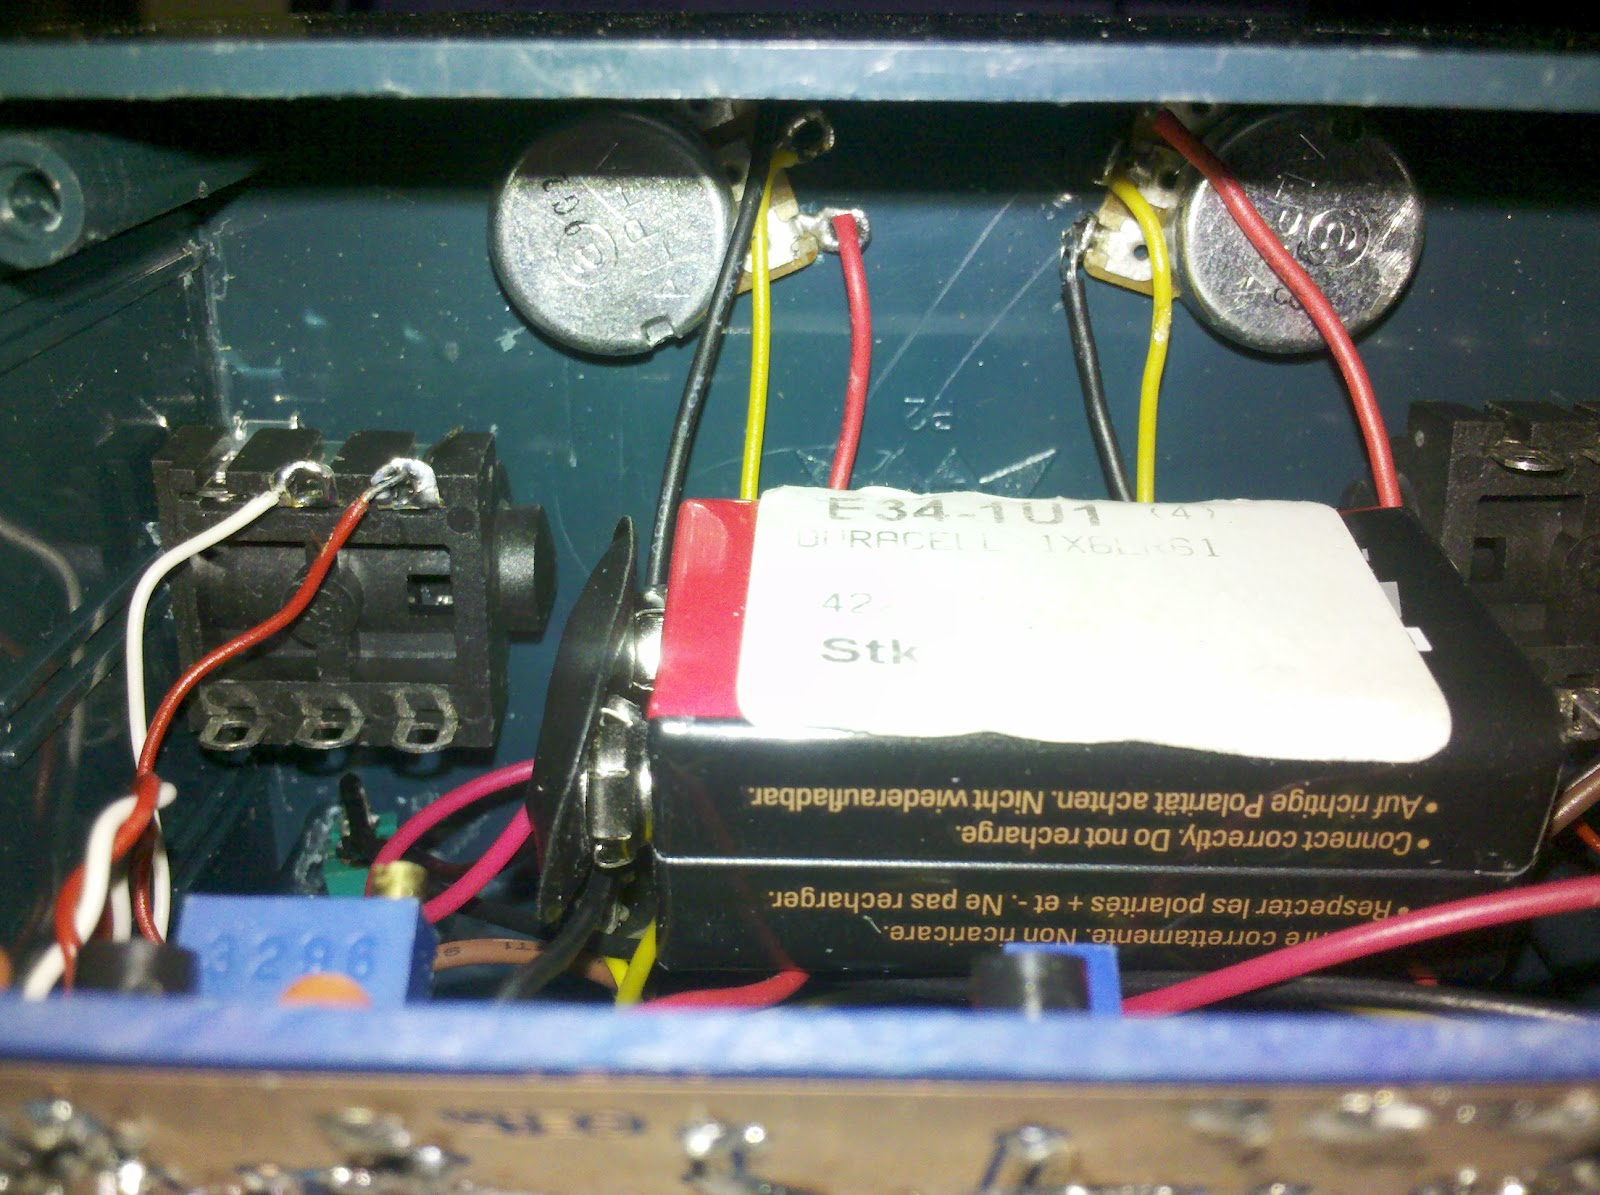 New Wiring For My Epiphone Les Paul Edmar Hobby Electronic 2012 Standard Pcb Diagram And From The Back